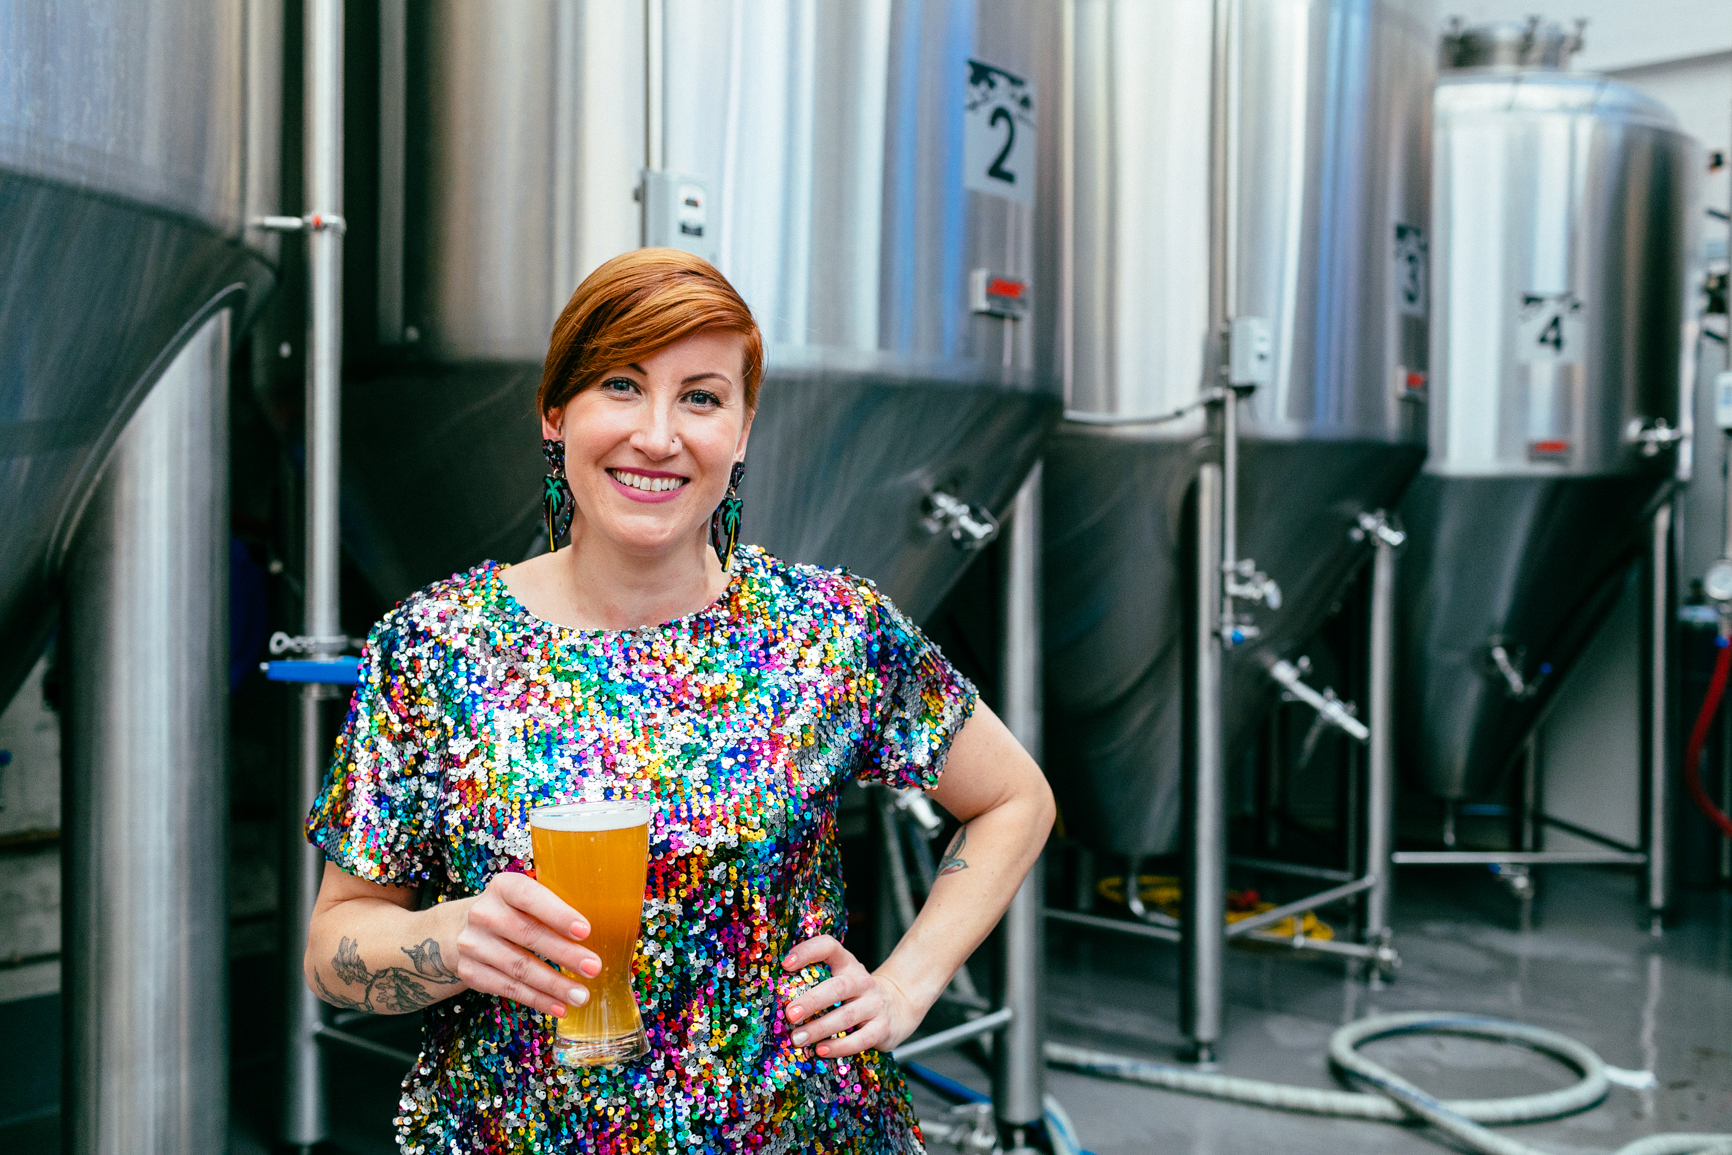 Sun Theatre Presents a Story of Girl Power Feat. Two Birds Brewing